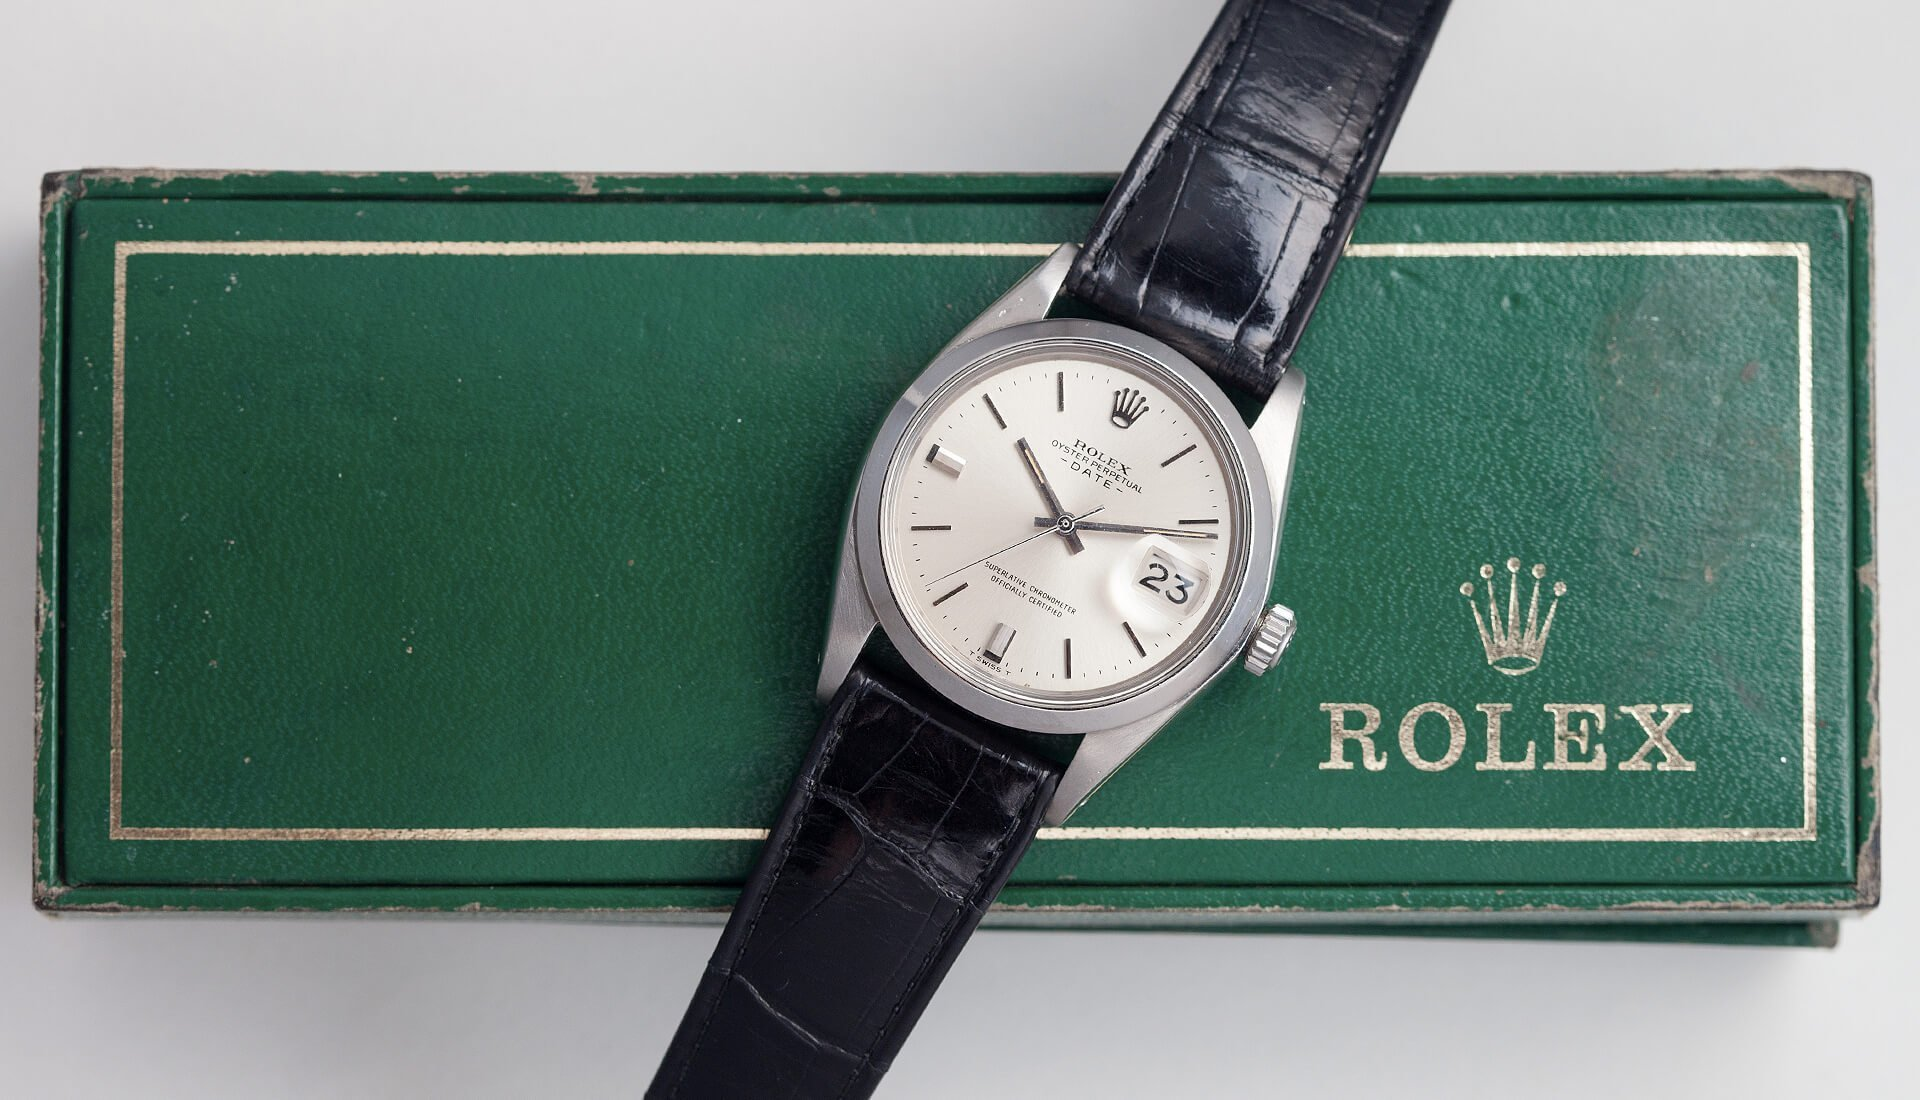 In The Metal: Three Stunning Vintage Watches That Won't Break The Bank